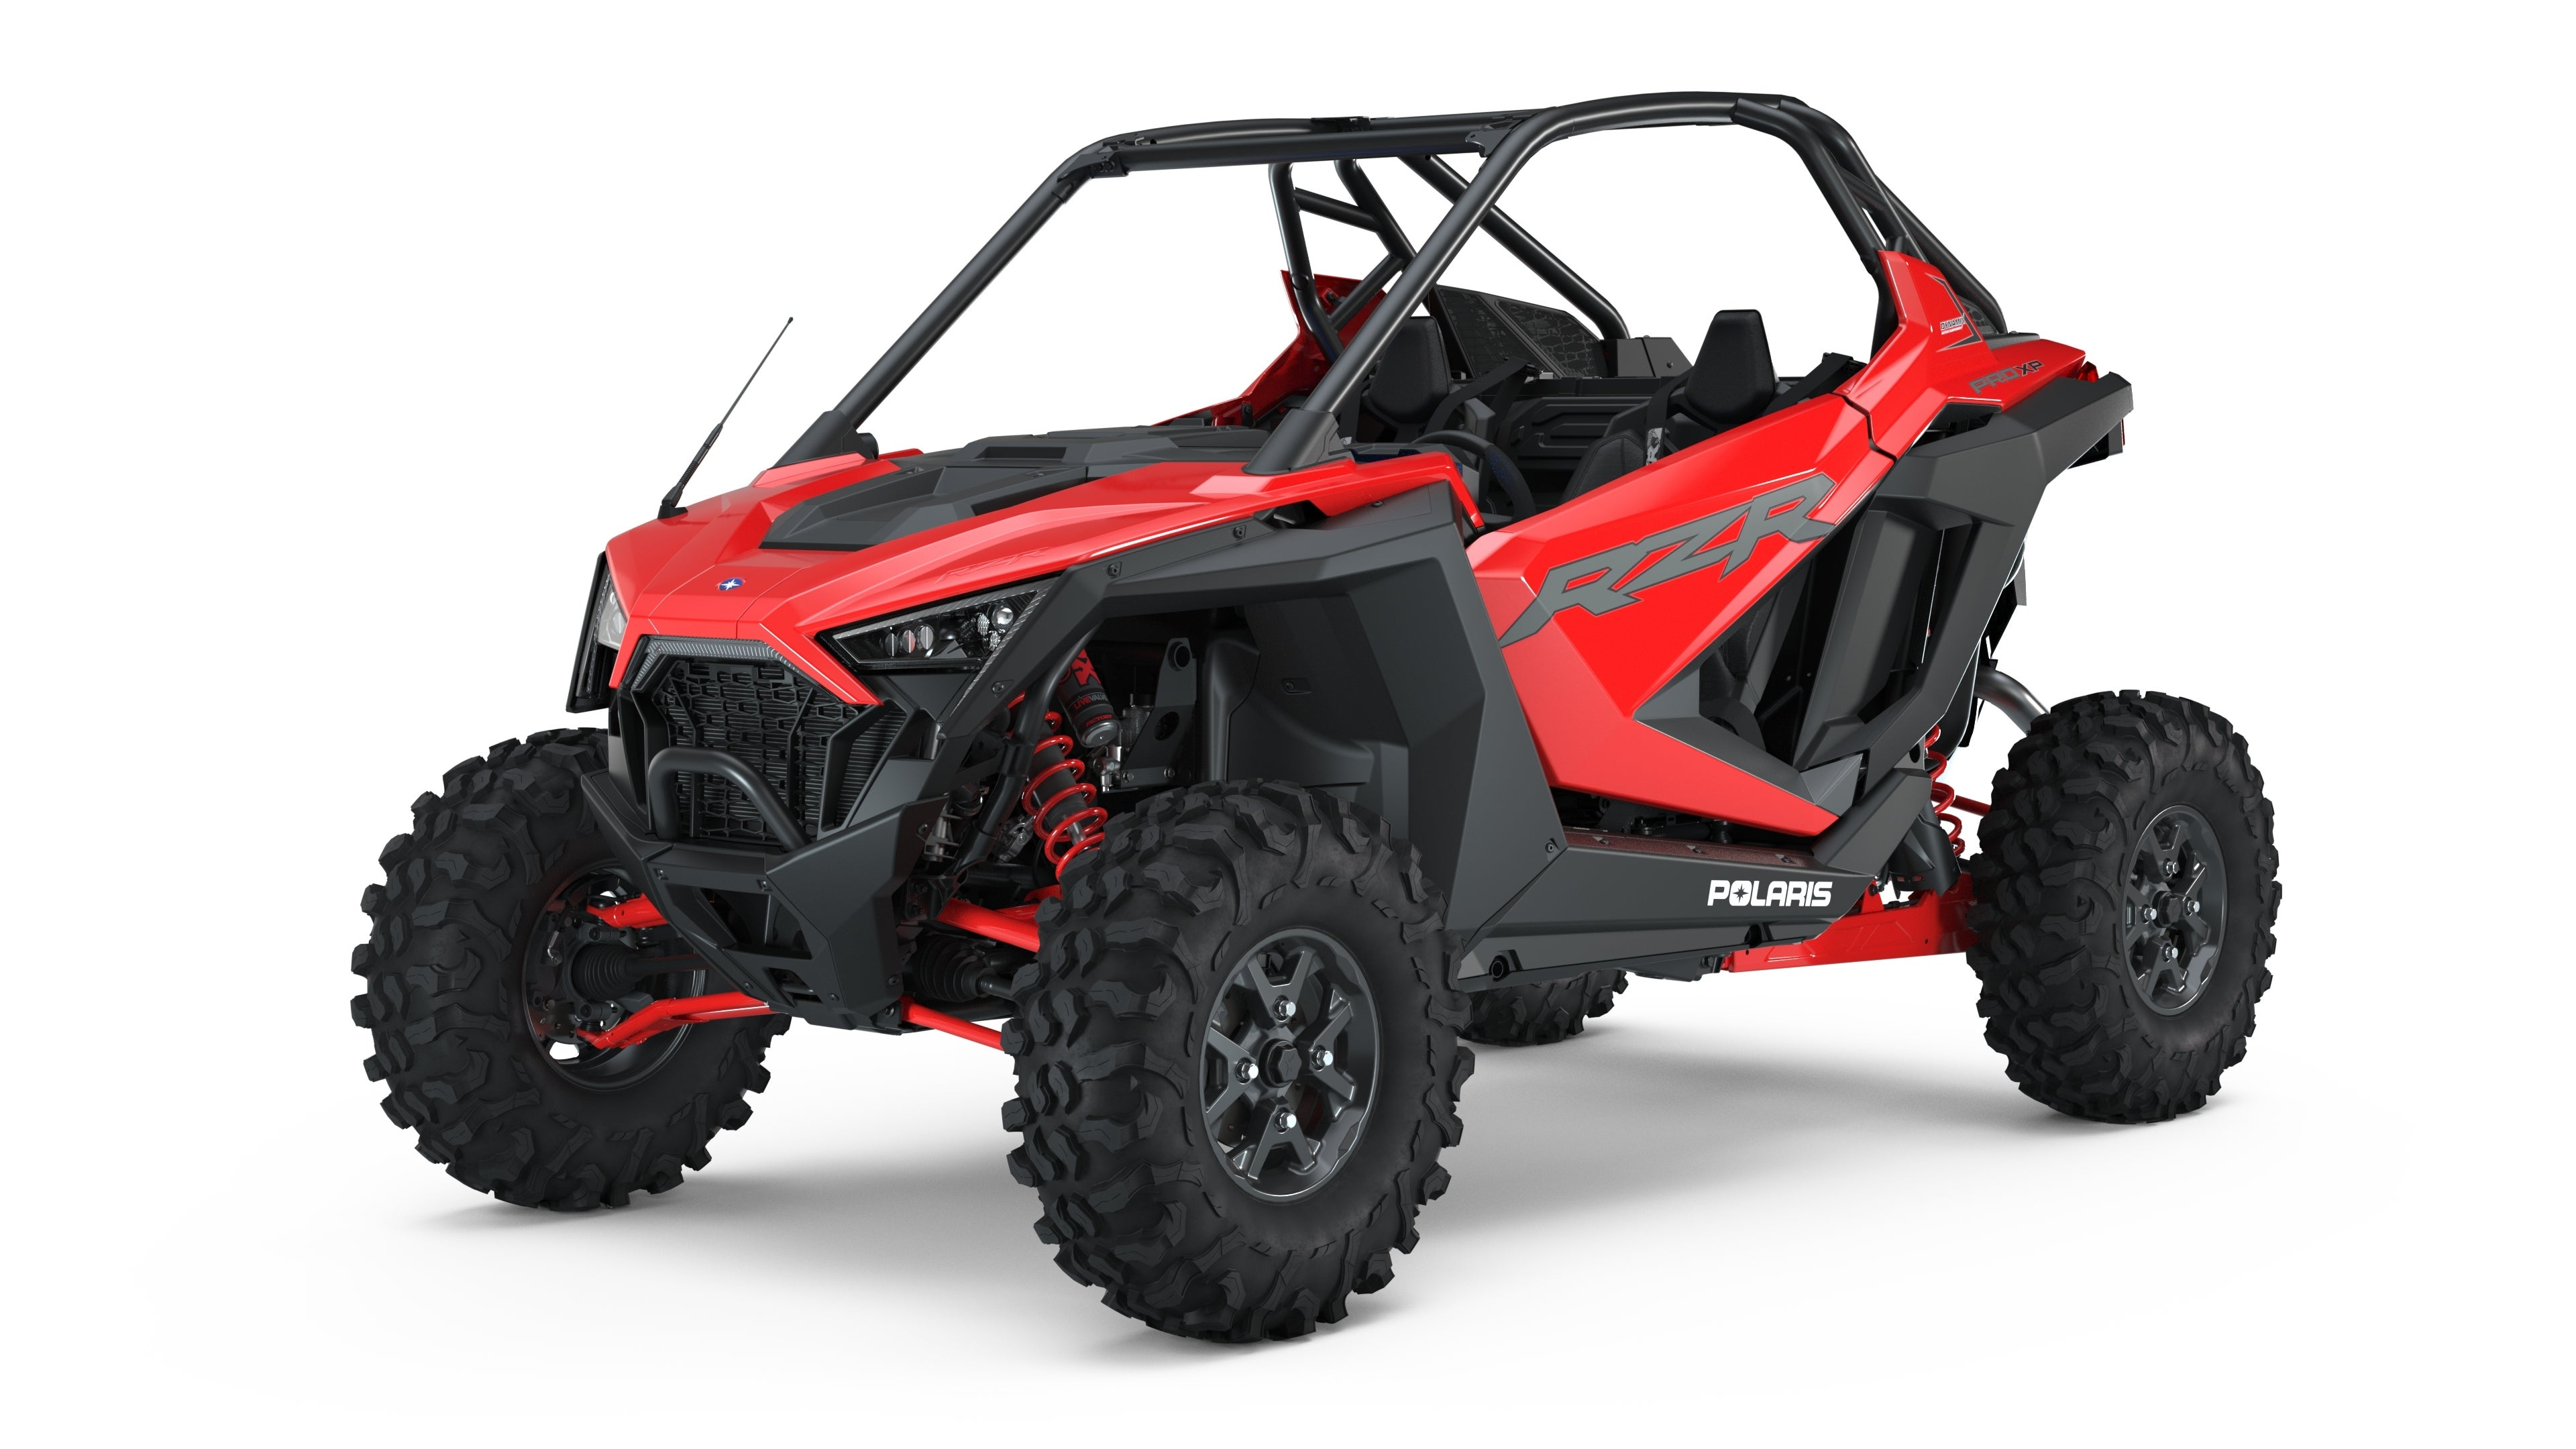 Has Polaris Industries Really Conquered Its Off-Road Vehicle Fire Hazard Problem? | The Motley Fool